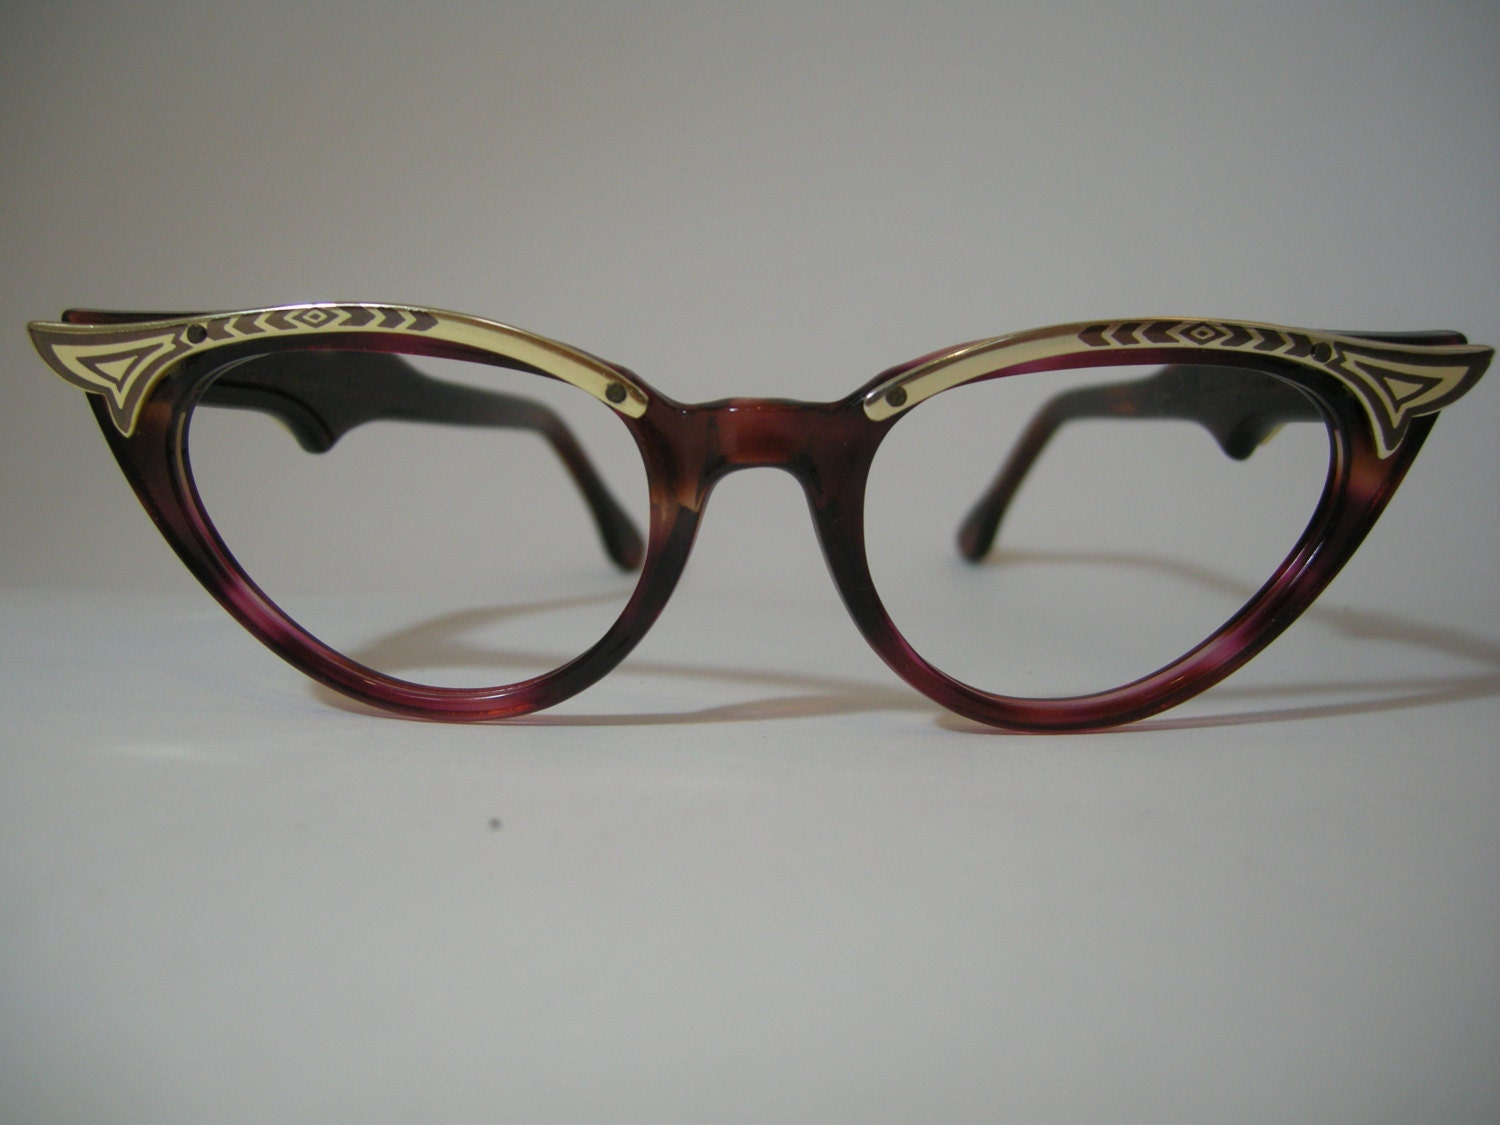 Vintage cateyes eyeglasses made in France